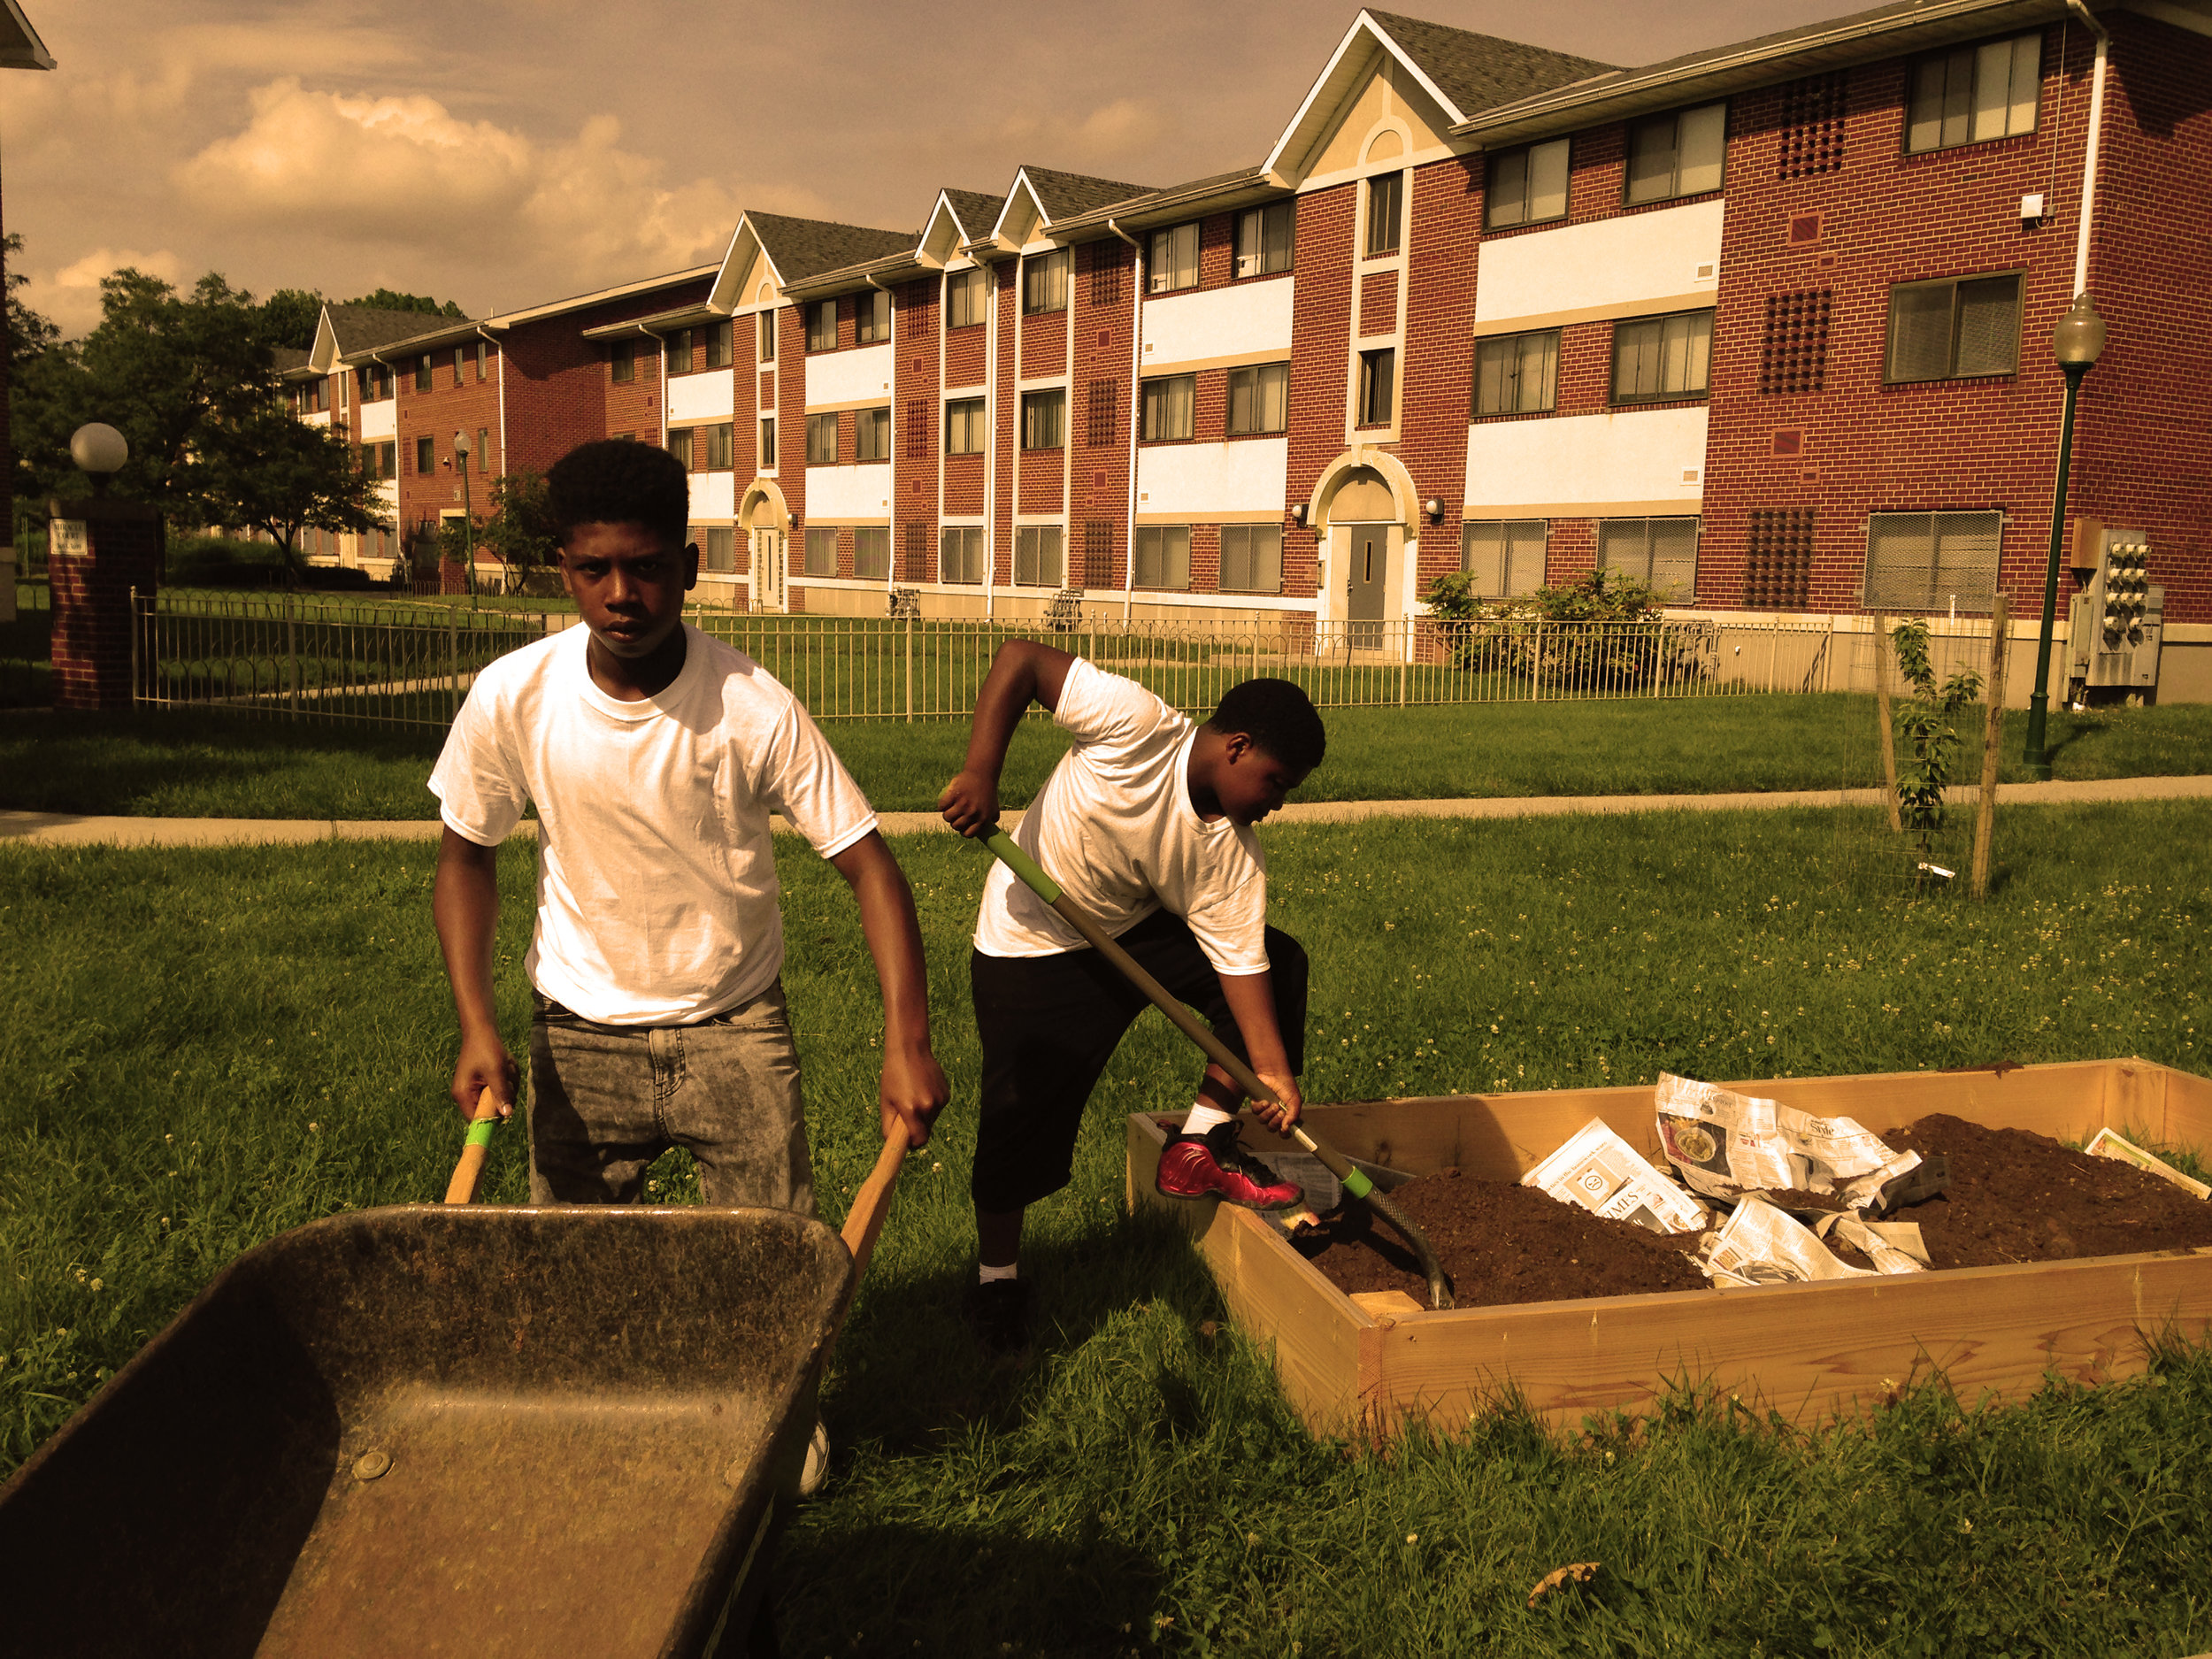 Teenage residents at Paradise Community Peace Garden build a new future by growing their own food.